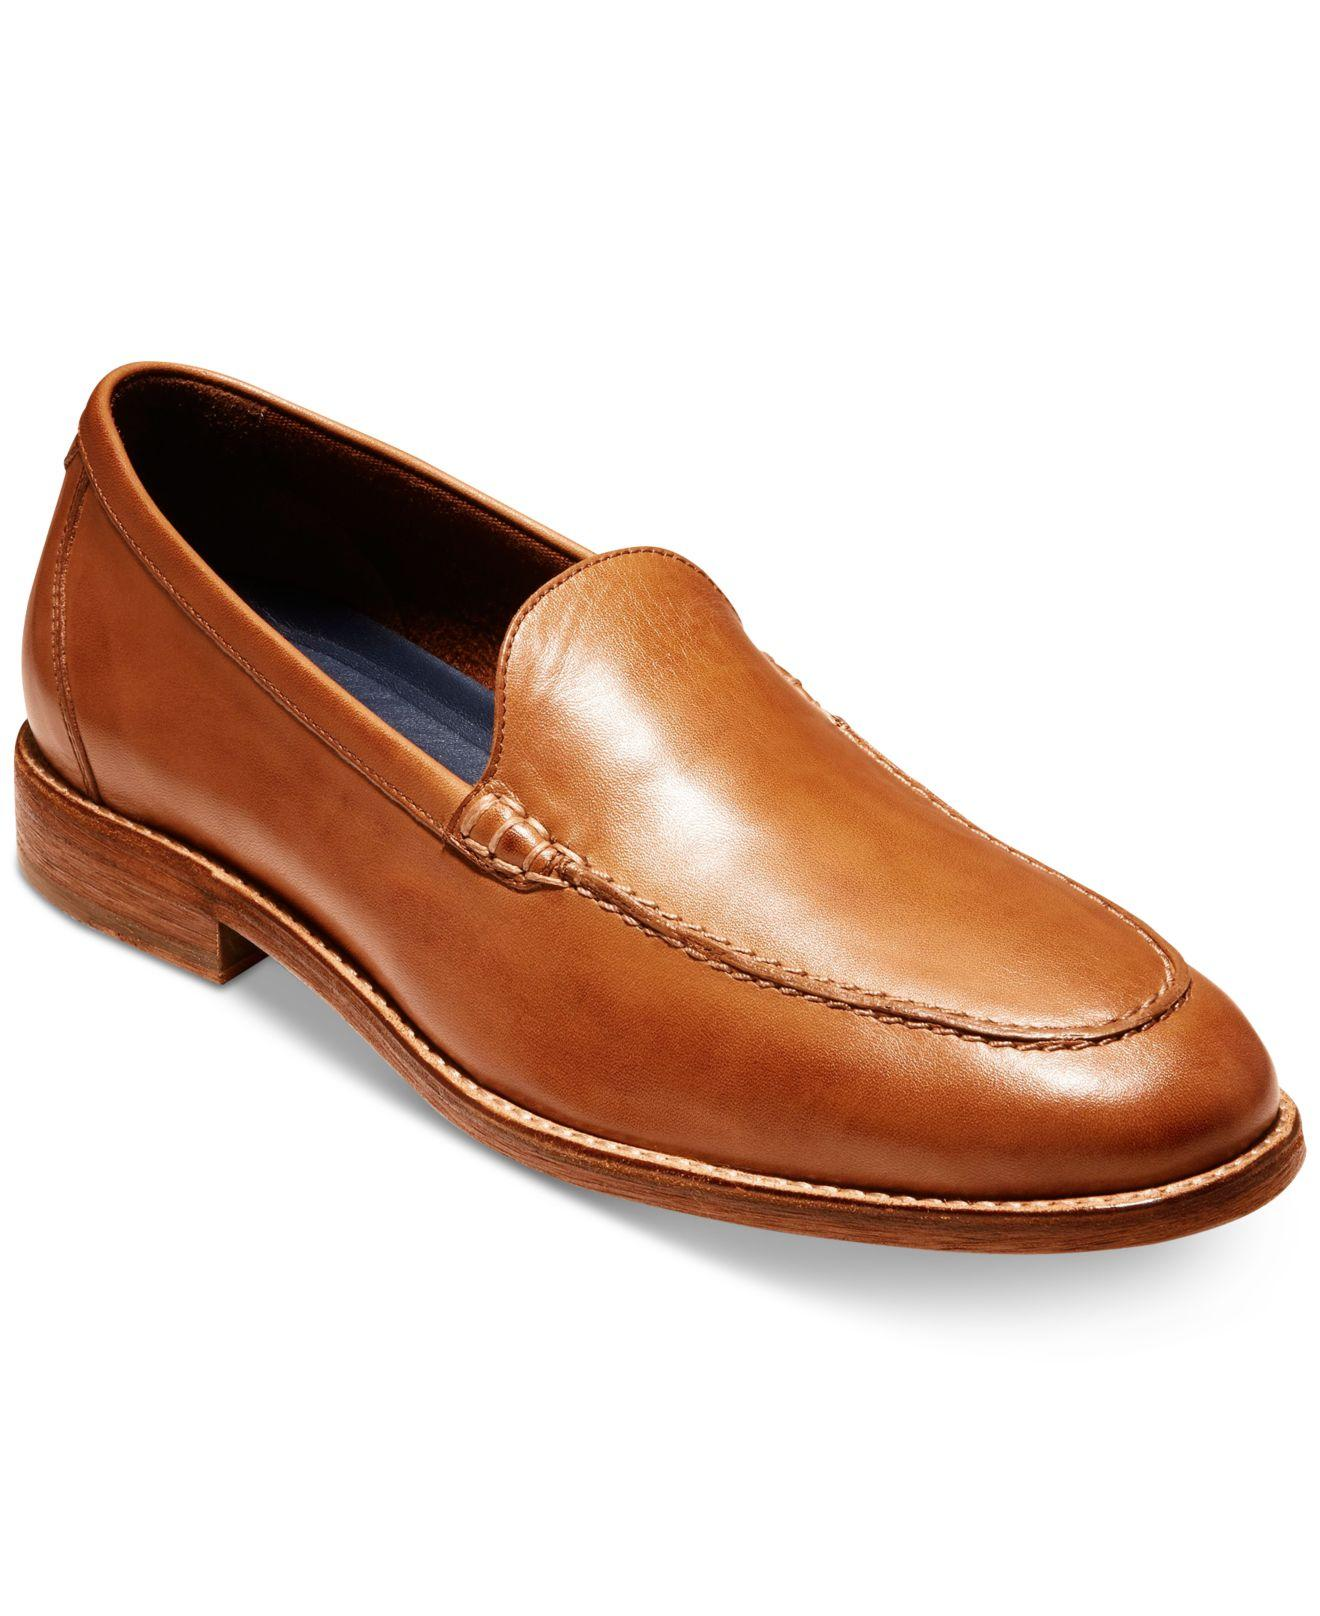 38a46ff357d Lyst - Cole Haan Feathercraft Grand Venetian Loafers in Brown for Men